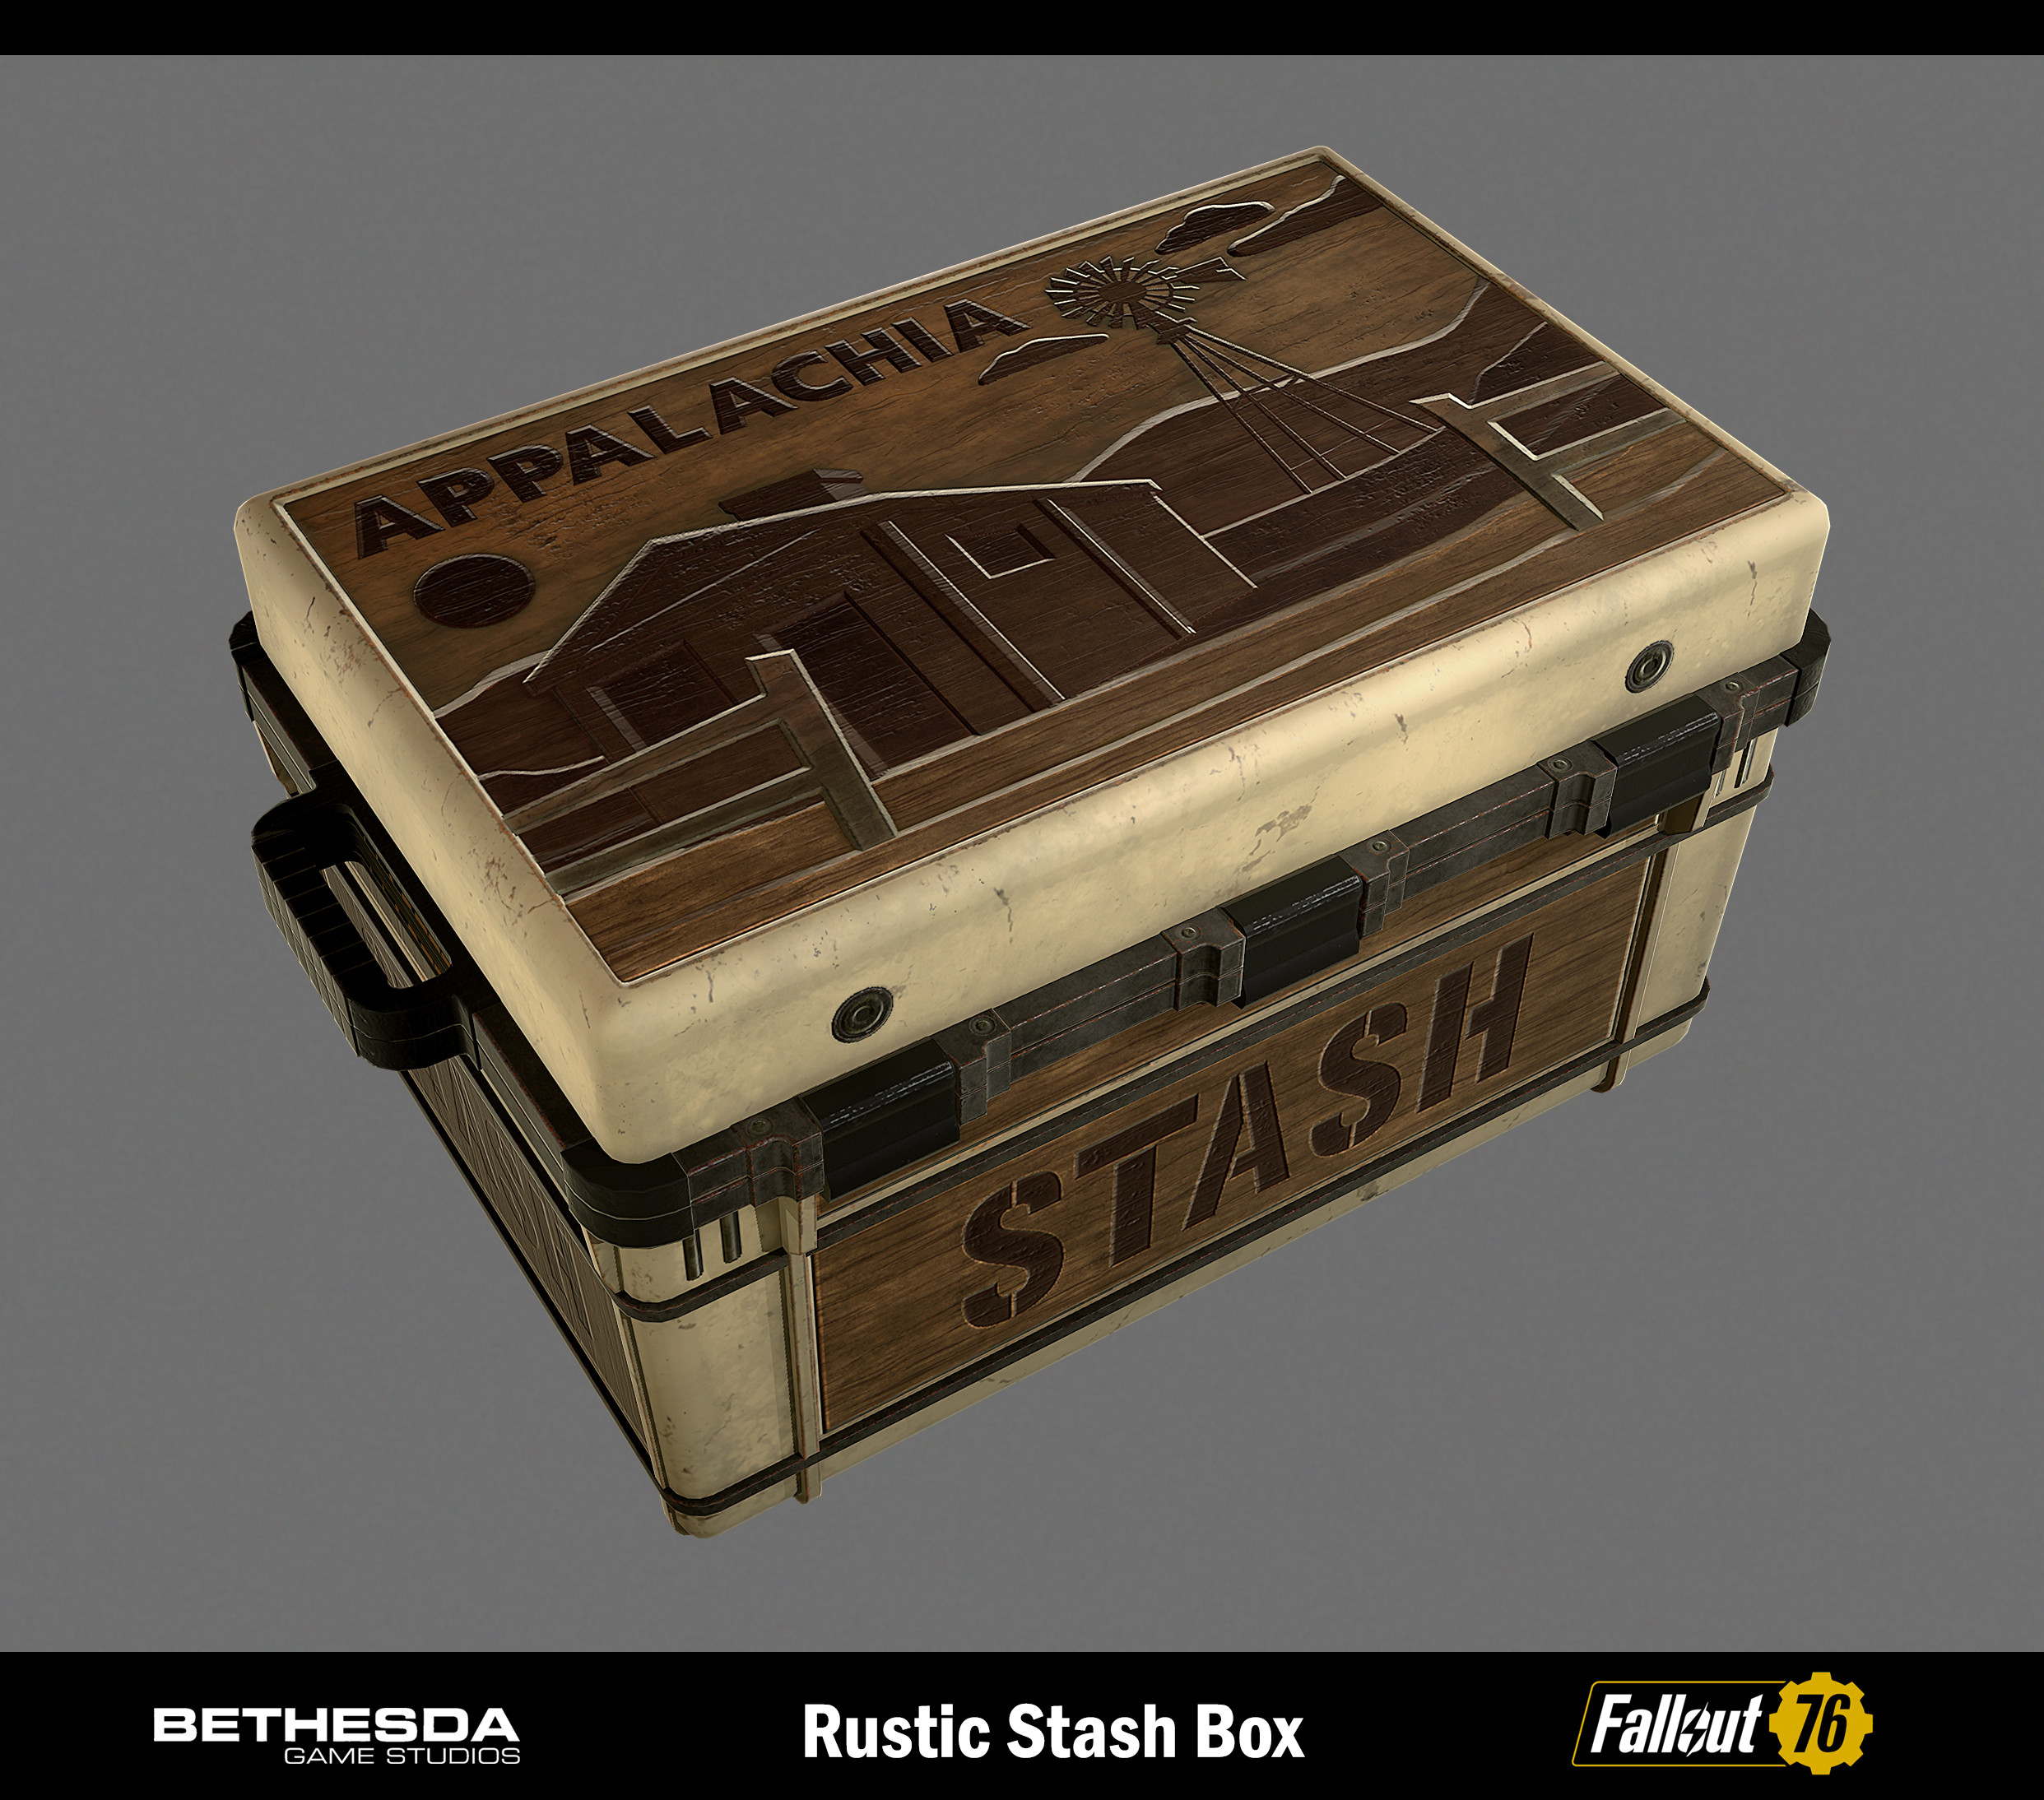 Rustic theme Stash box used to store loot, gear, and scrap